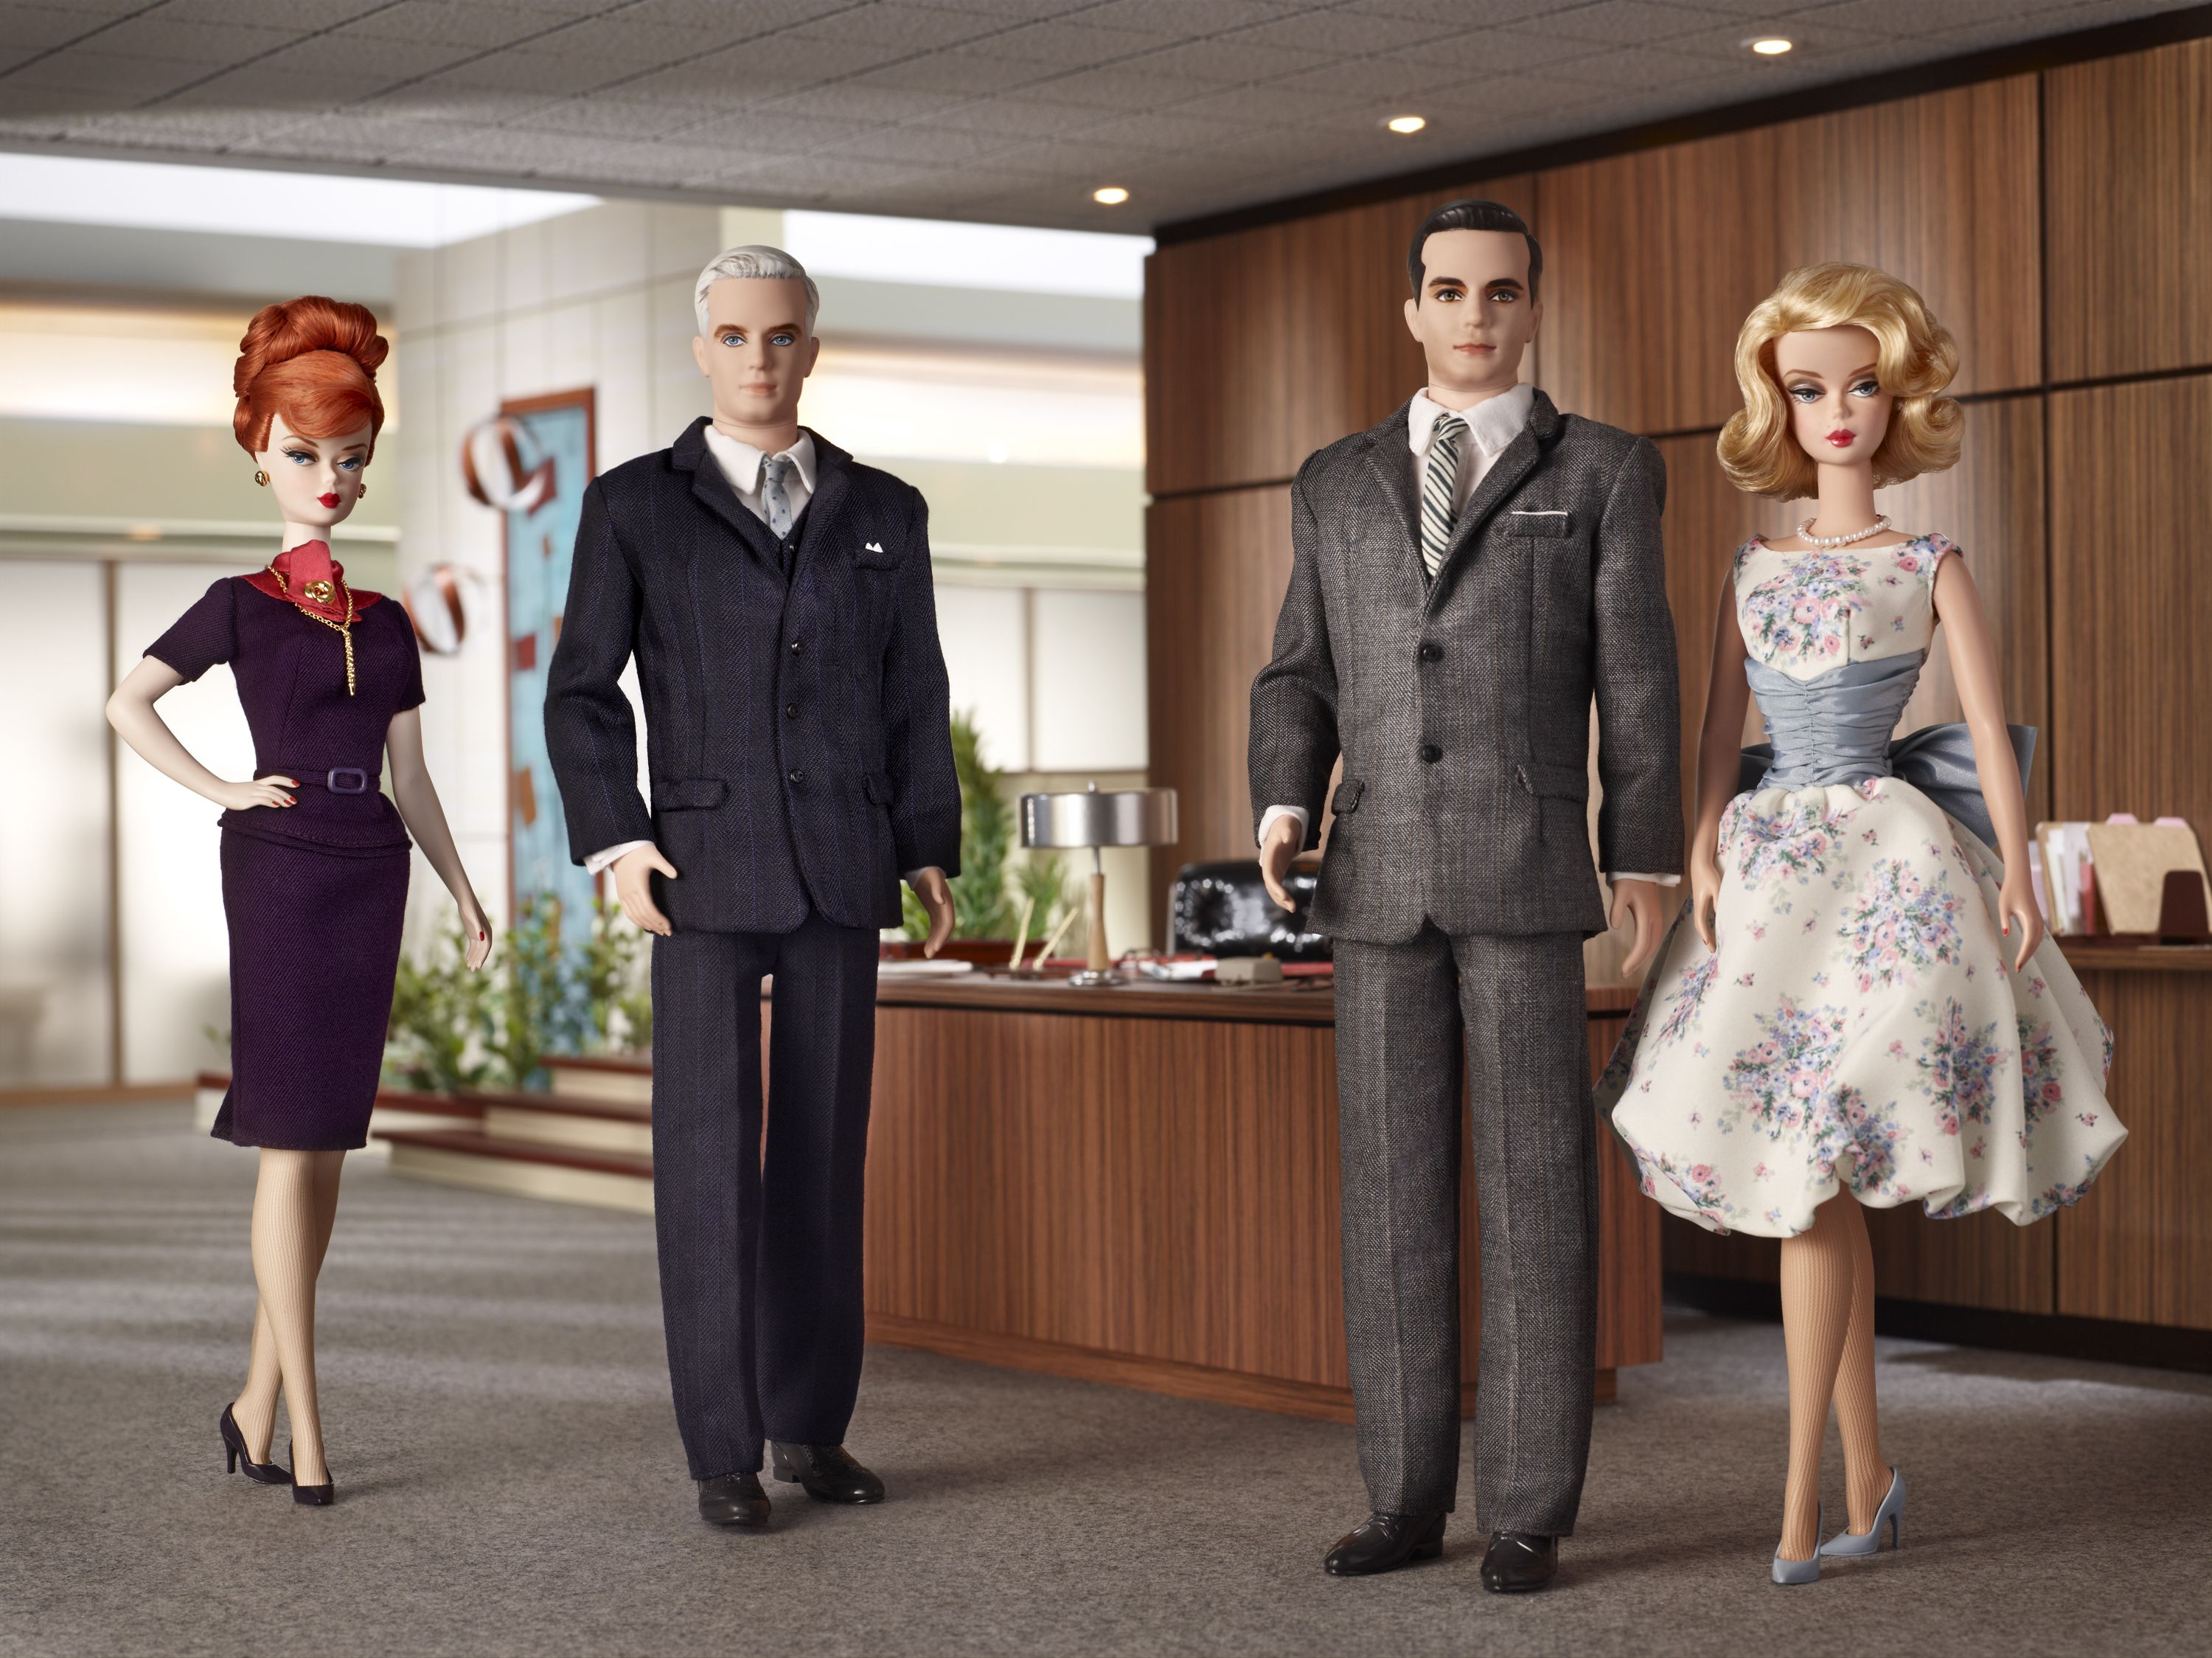 Playing House With the Drapers: The Mad Men Barbie Collection